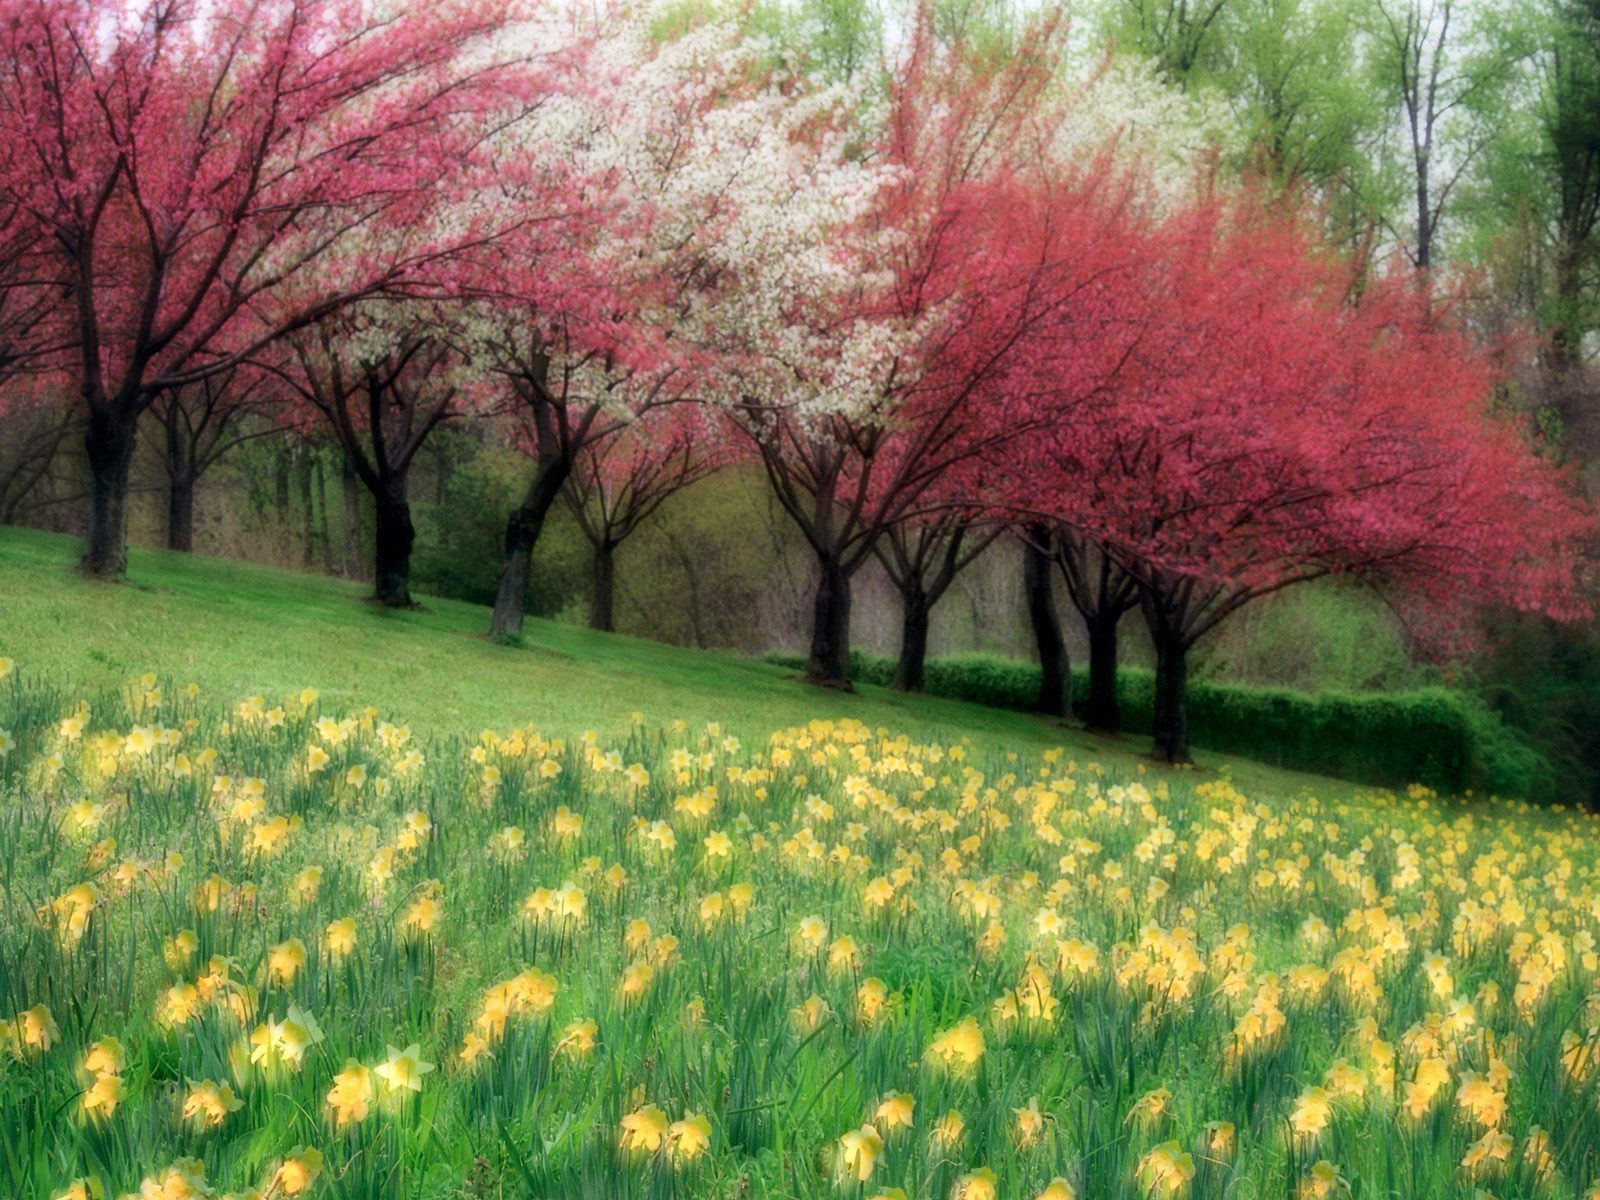 Spring Meadow Http Wallpapersdepo Net Free Photography Wallpapers Spring Meadow Beautiful Scenery Wallpaper Scenery Background Beautiful Scenery Pictures